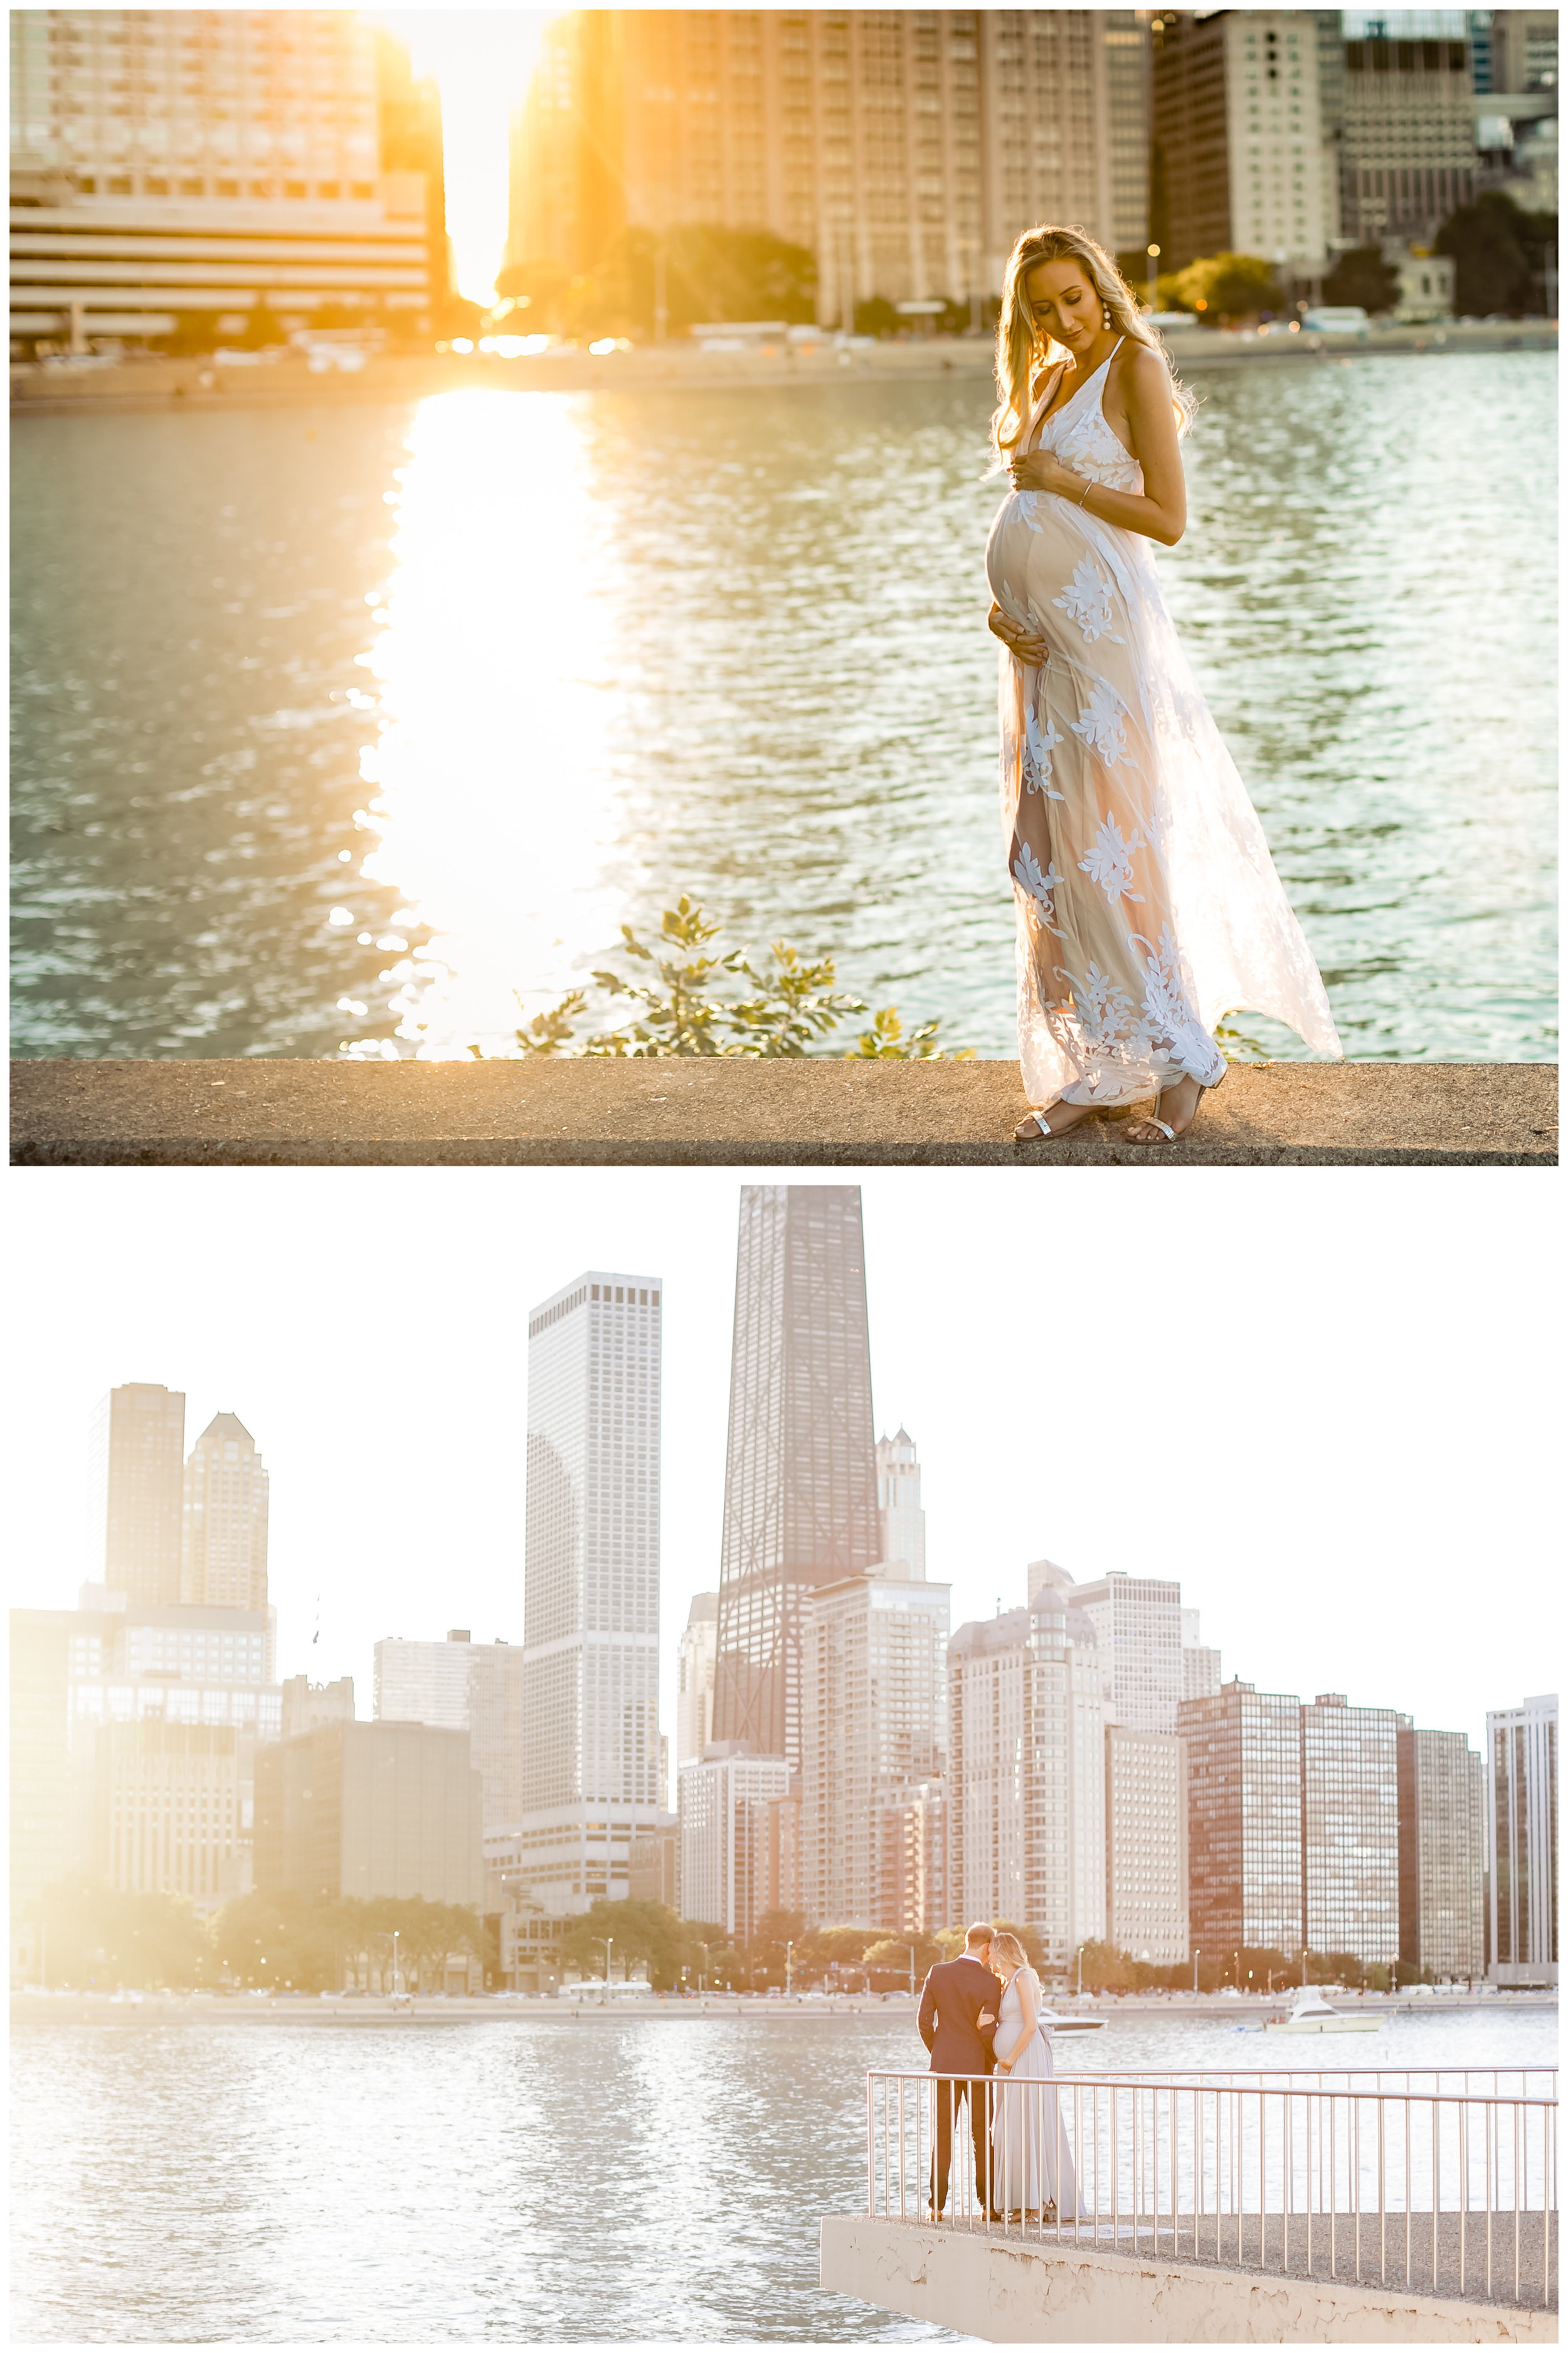 carly cristman maternity lifestyle pregnancy chicago photography shoot jenny grimm 7.jpg